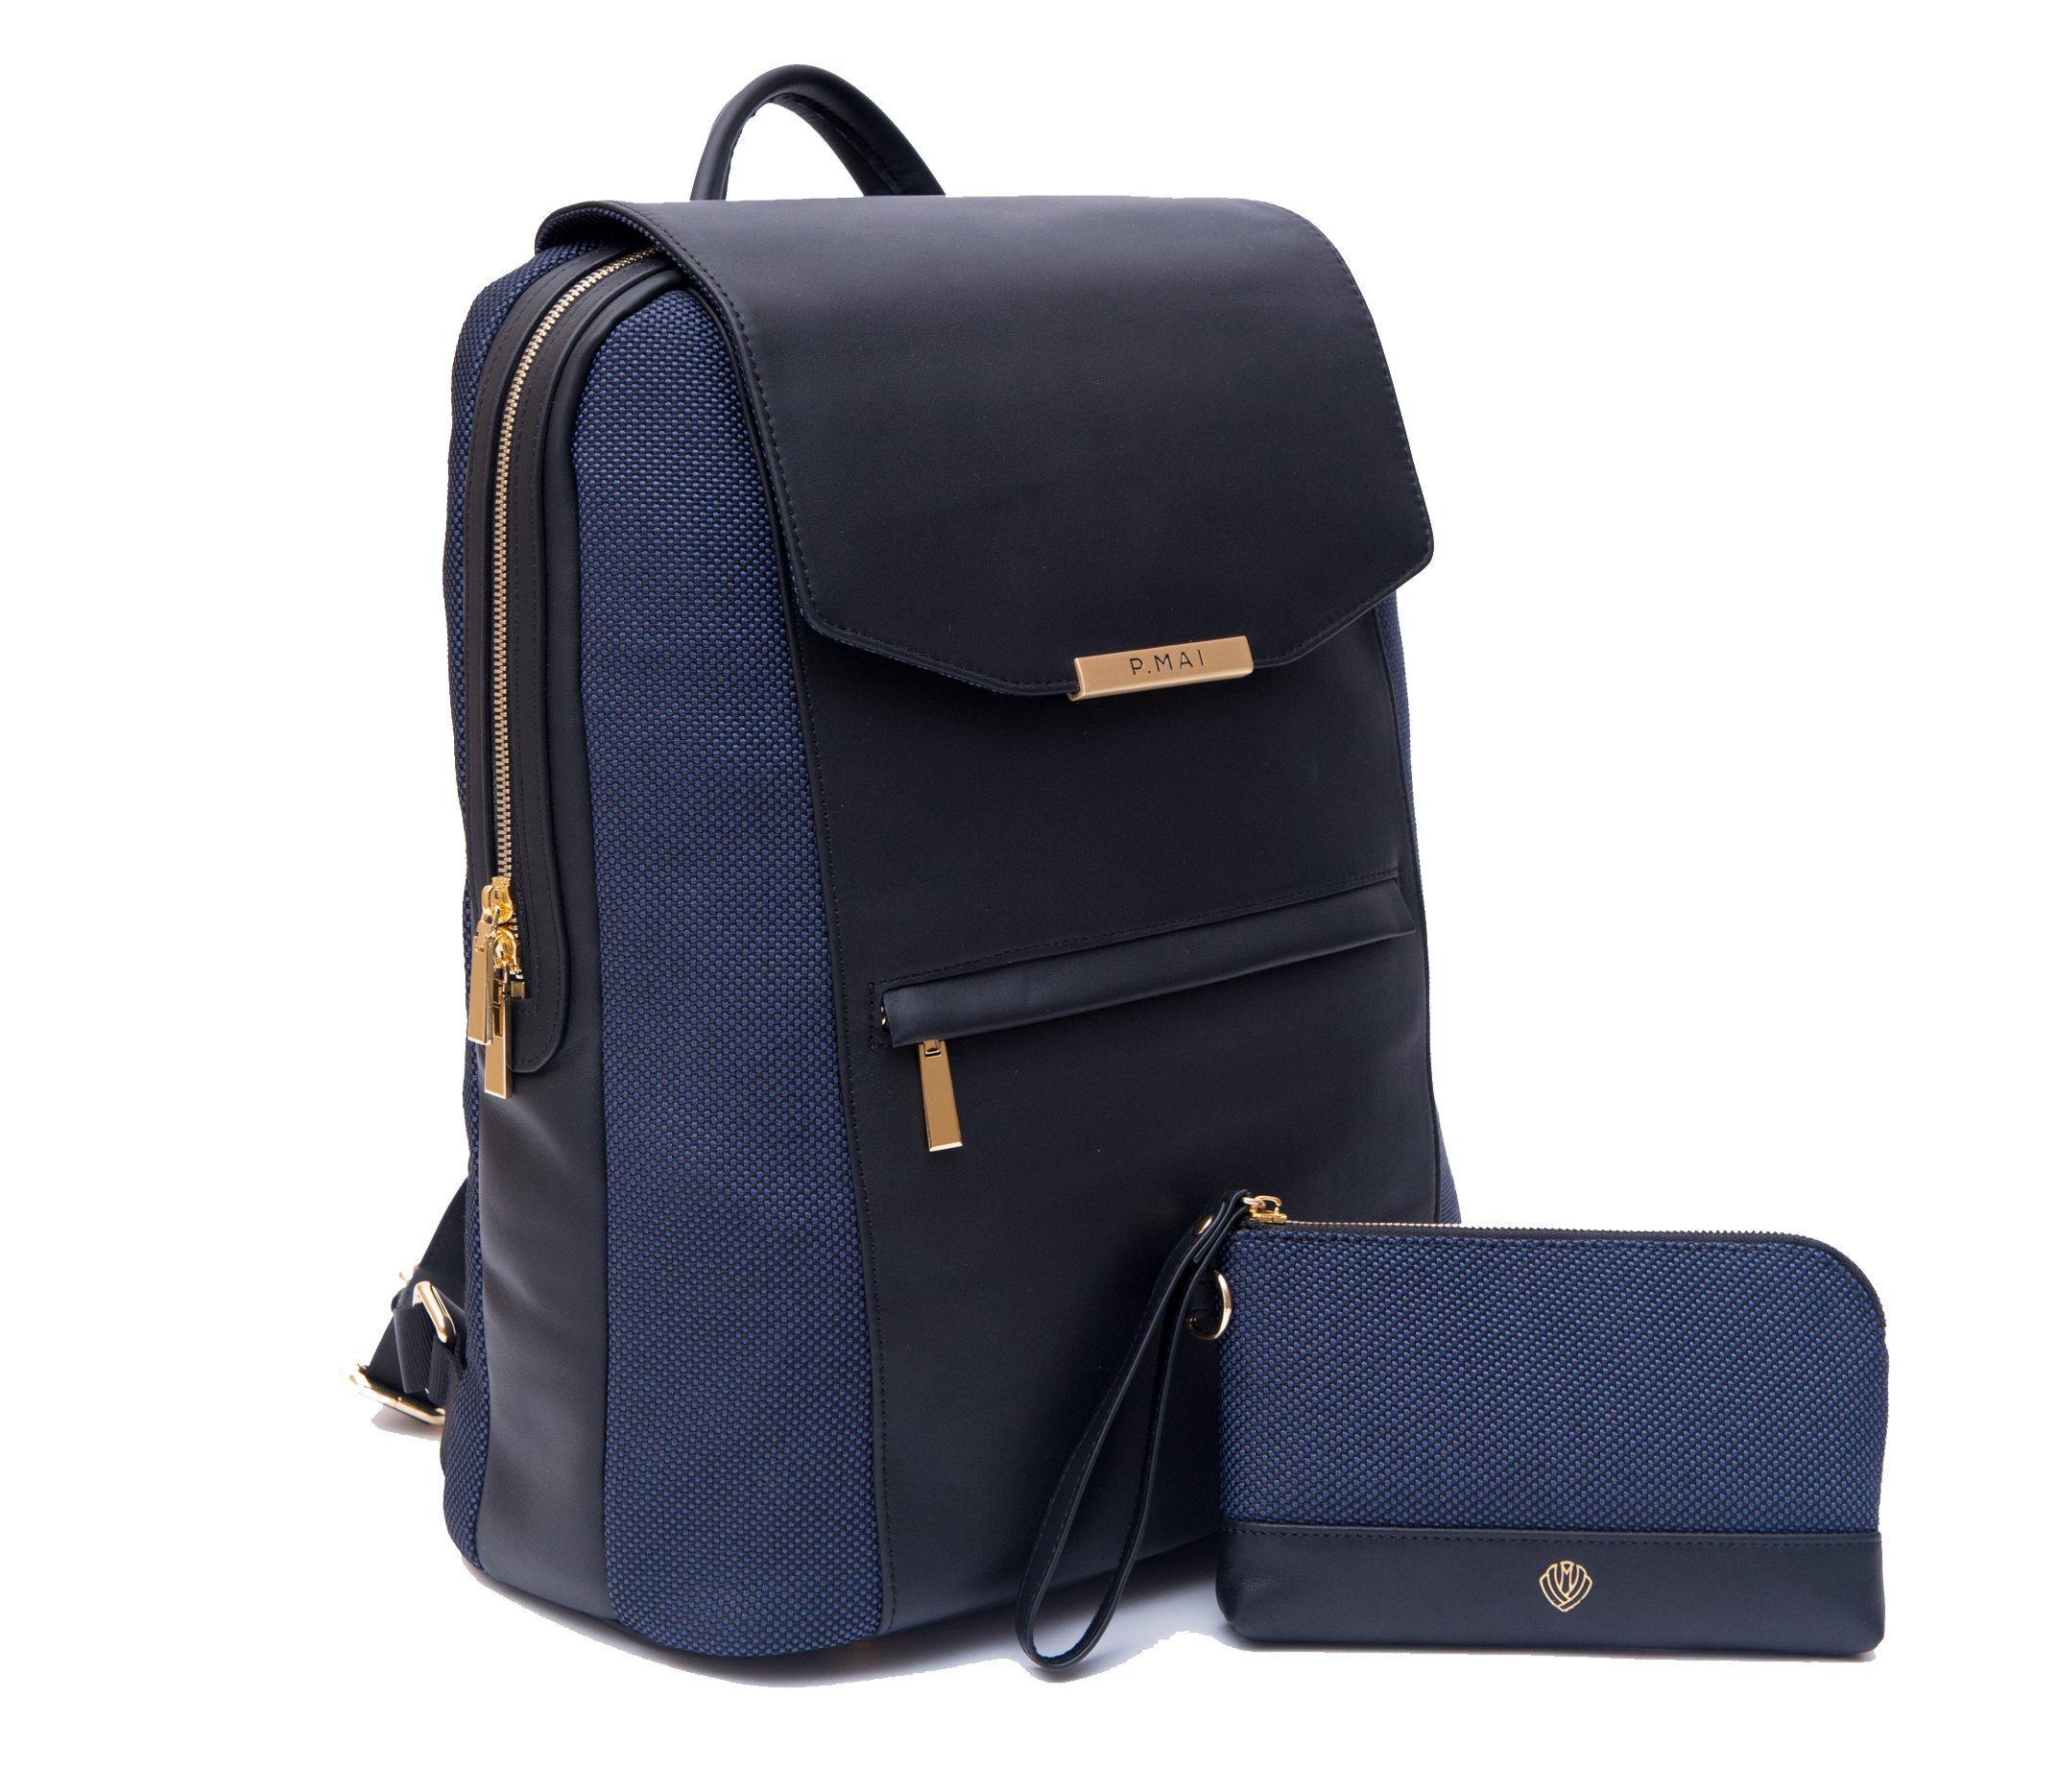 P.MAI Premium Valletta Leather Laptop Backpack for Women with Wristlet I 15-Inch Executive Laptop and Notebook Computer Backpack I Ideal for Business, Travel, Work I Incl. Commuter Purse – Navy Blue by P.MAI